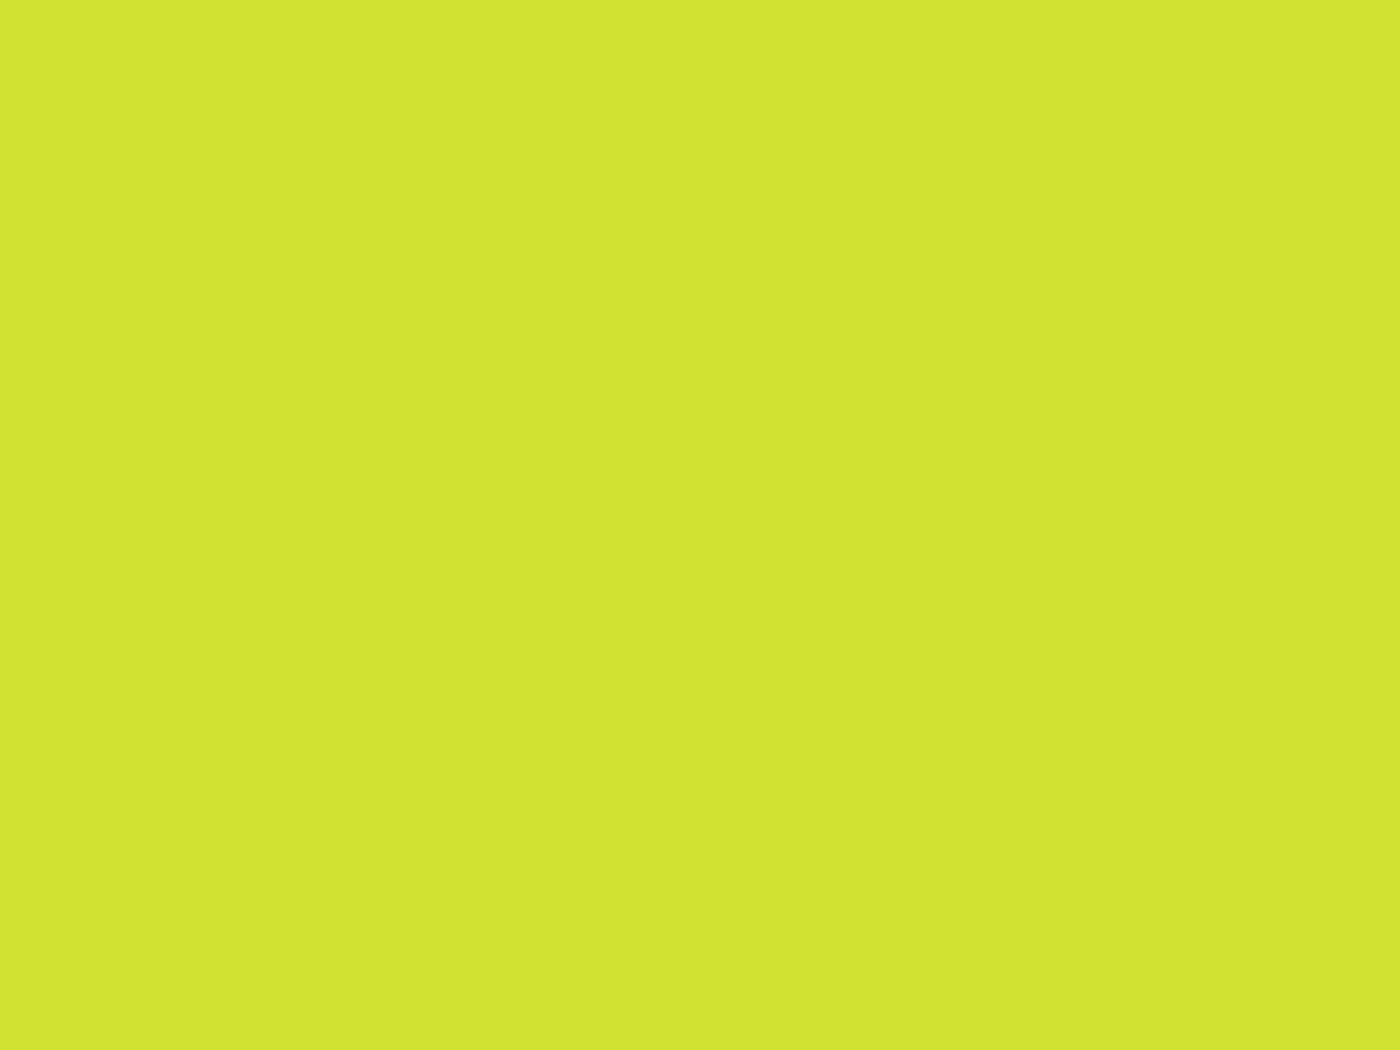 1400x1050 Pear Solid Color Background